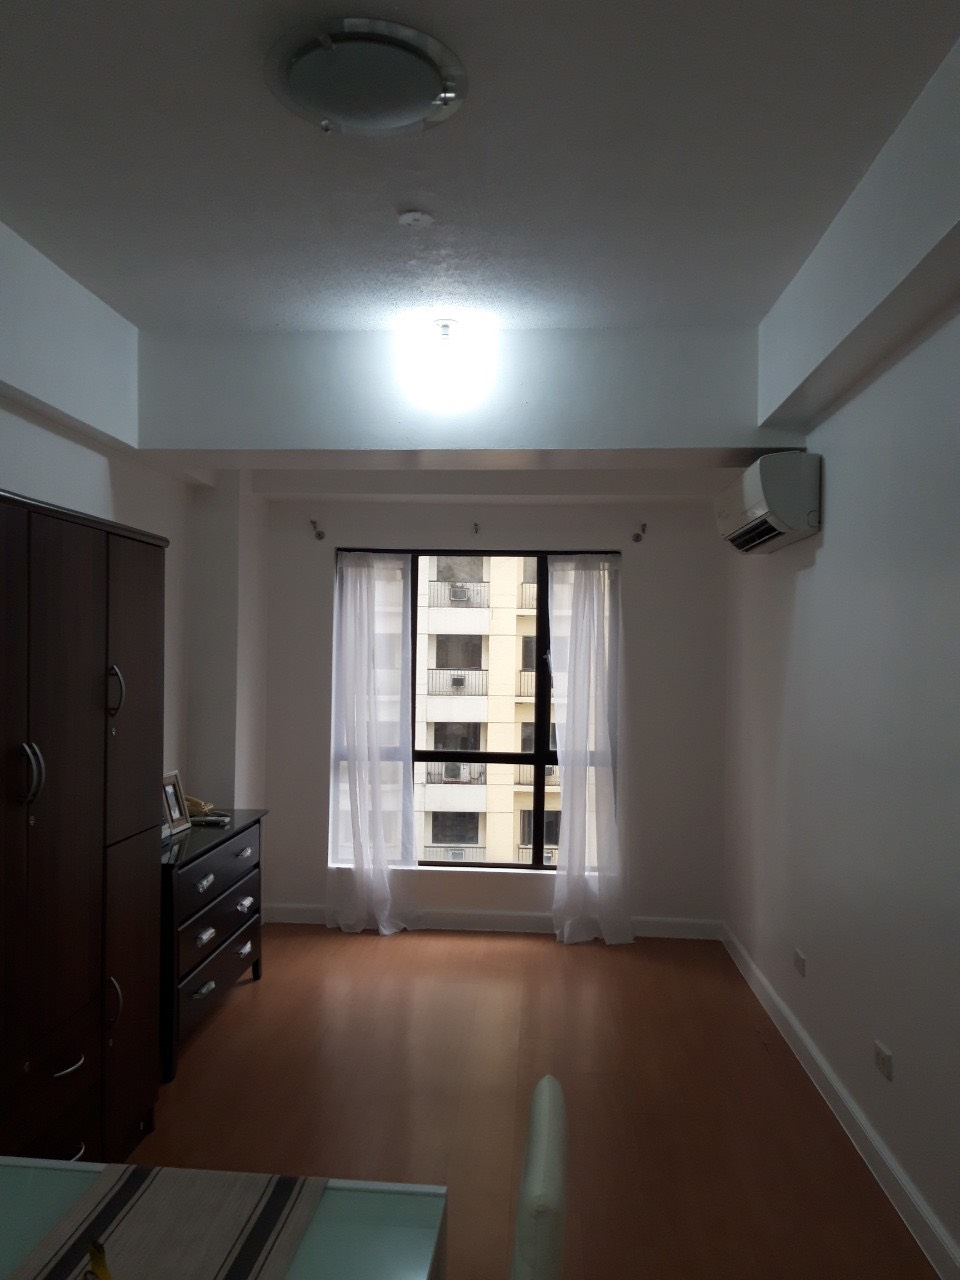 1 Bedroom Condo For Sale, Forbeswood Heights, BGC 1